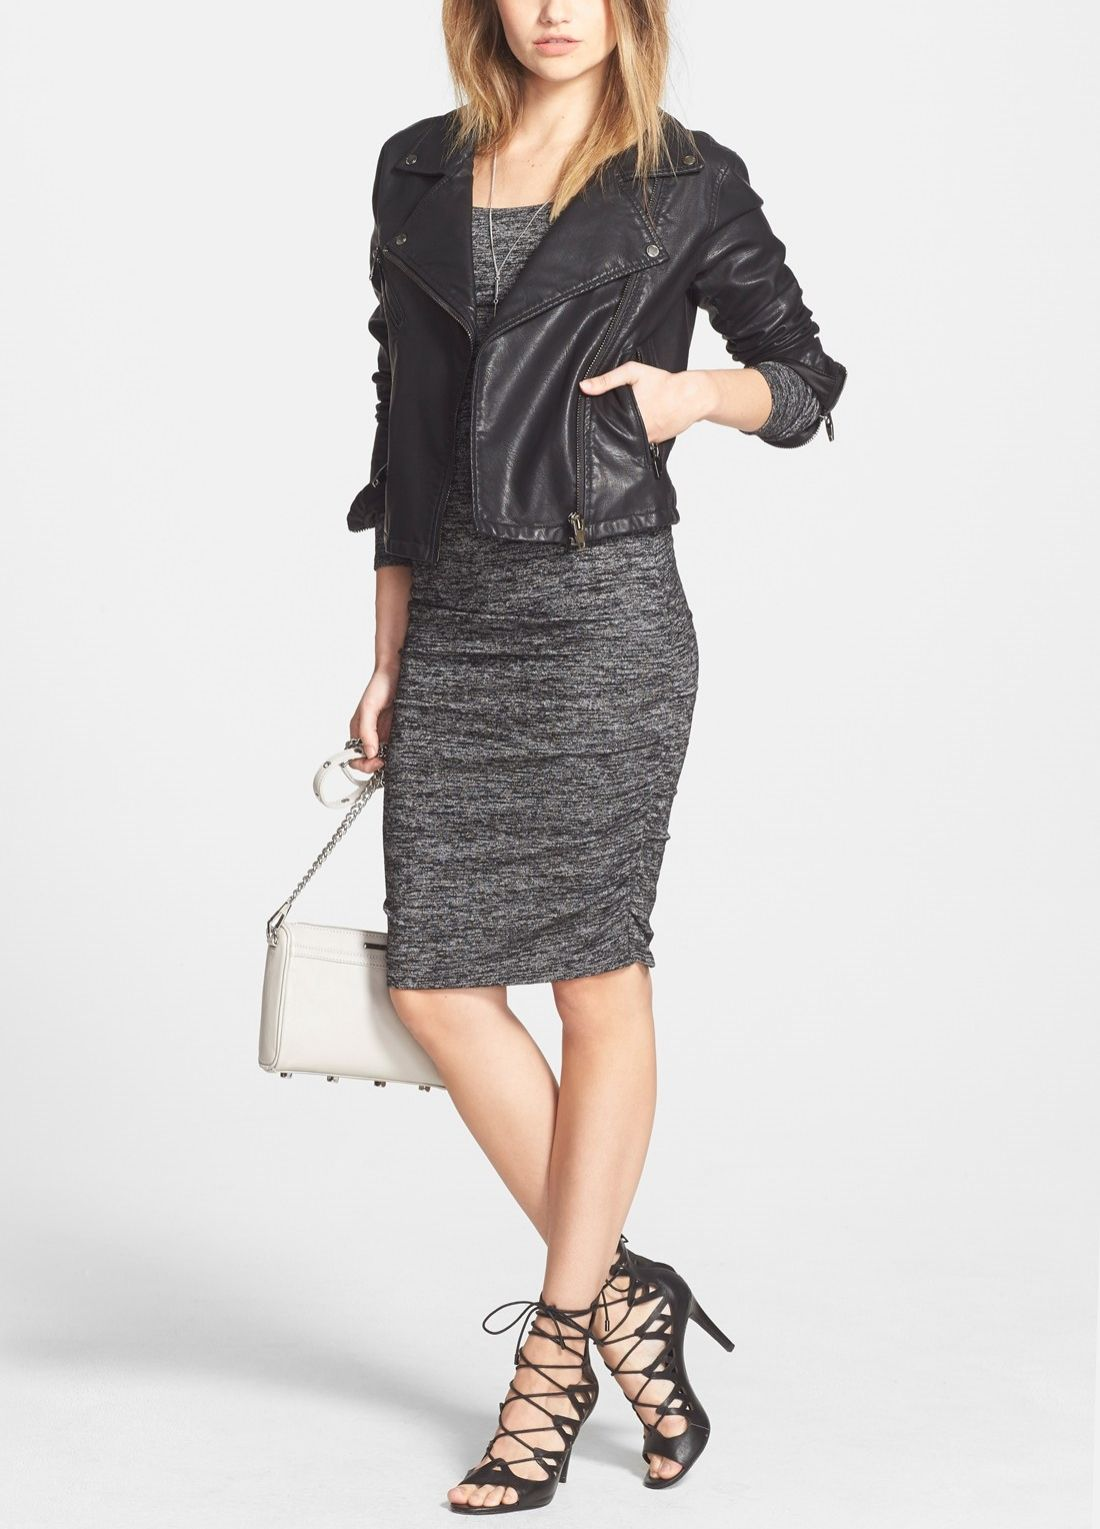 Obsessing over this black leather jacket paired with a grey heathered dress for a city chic look.